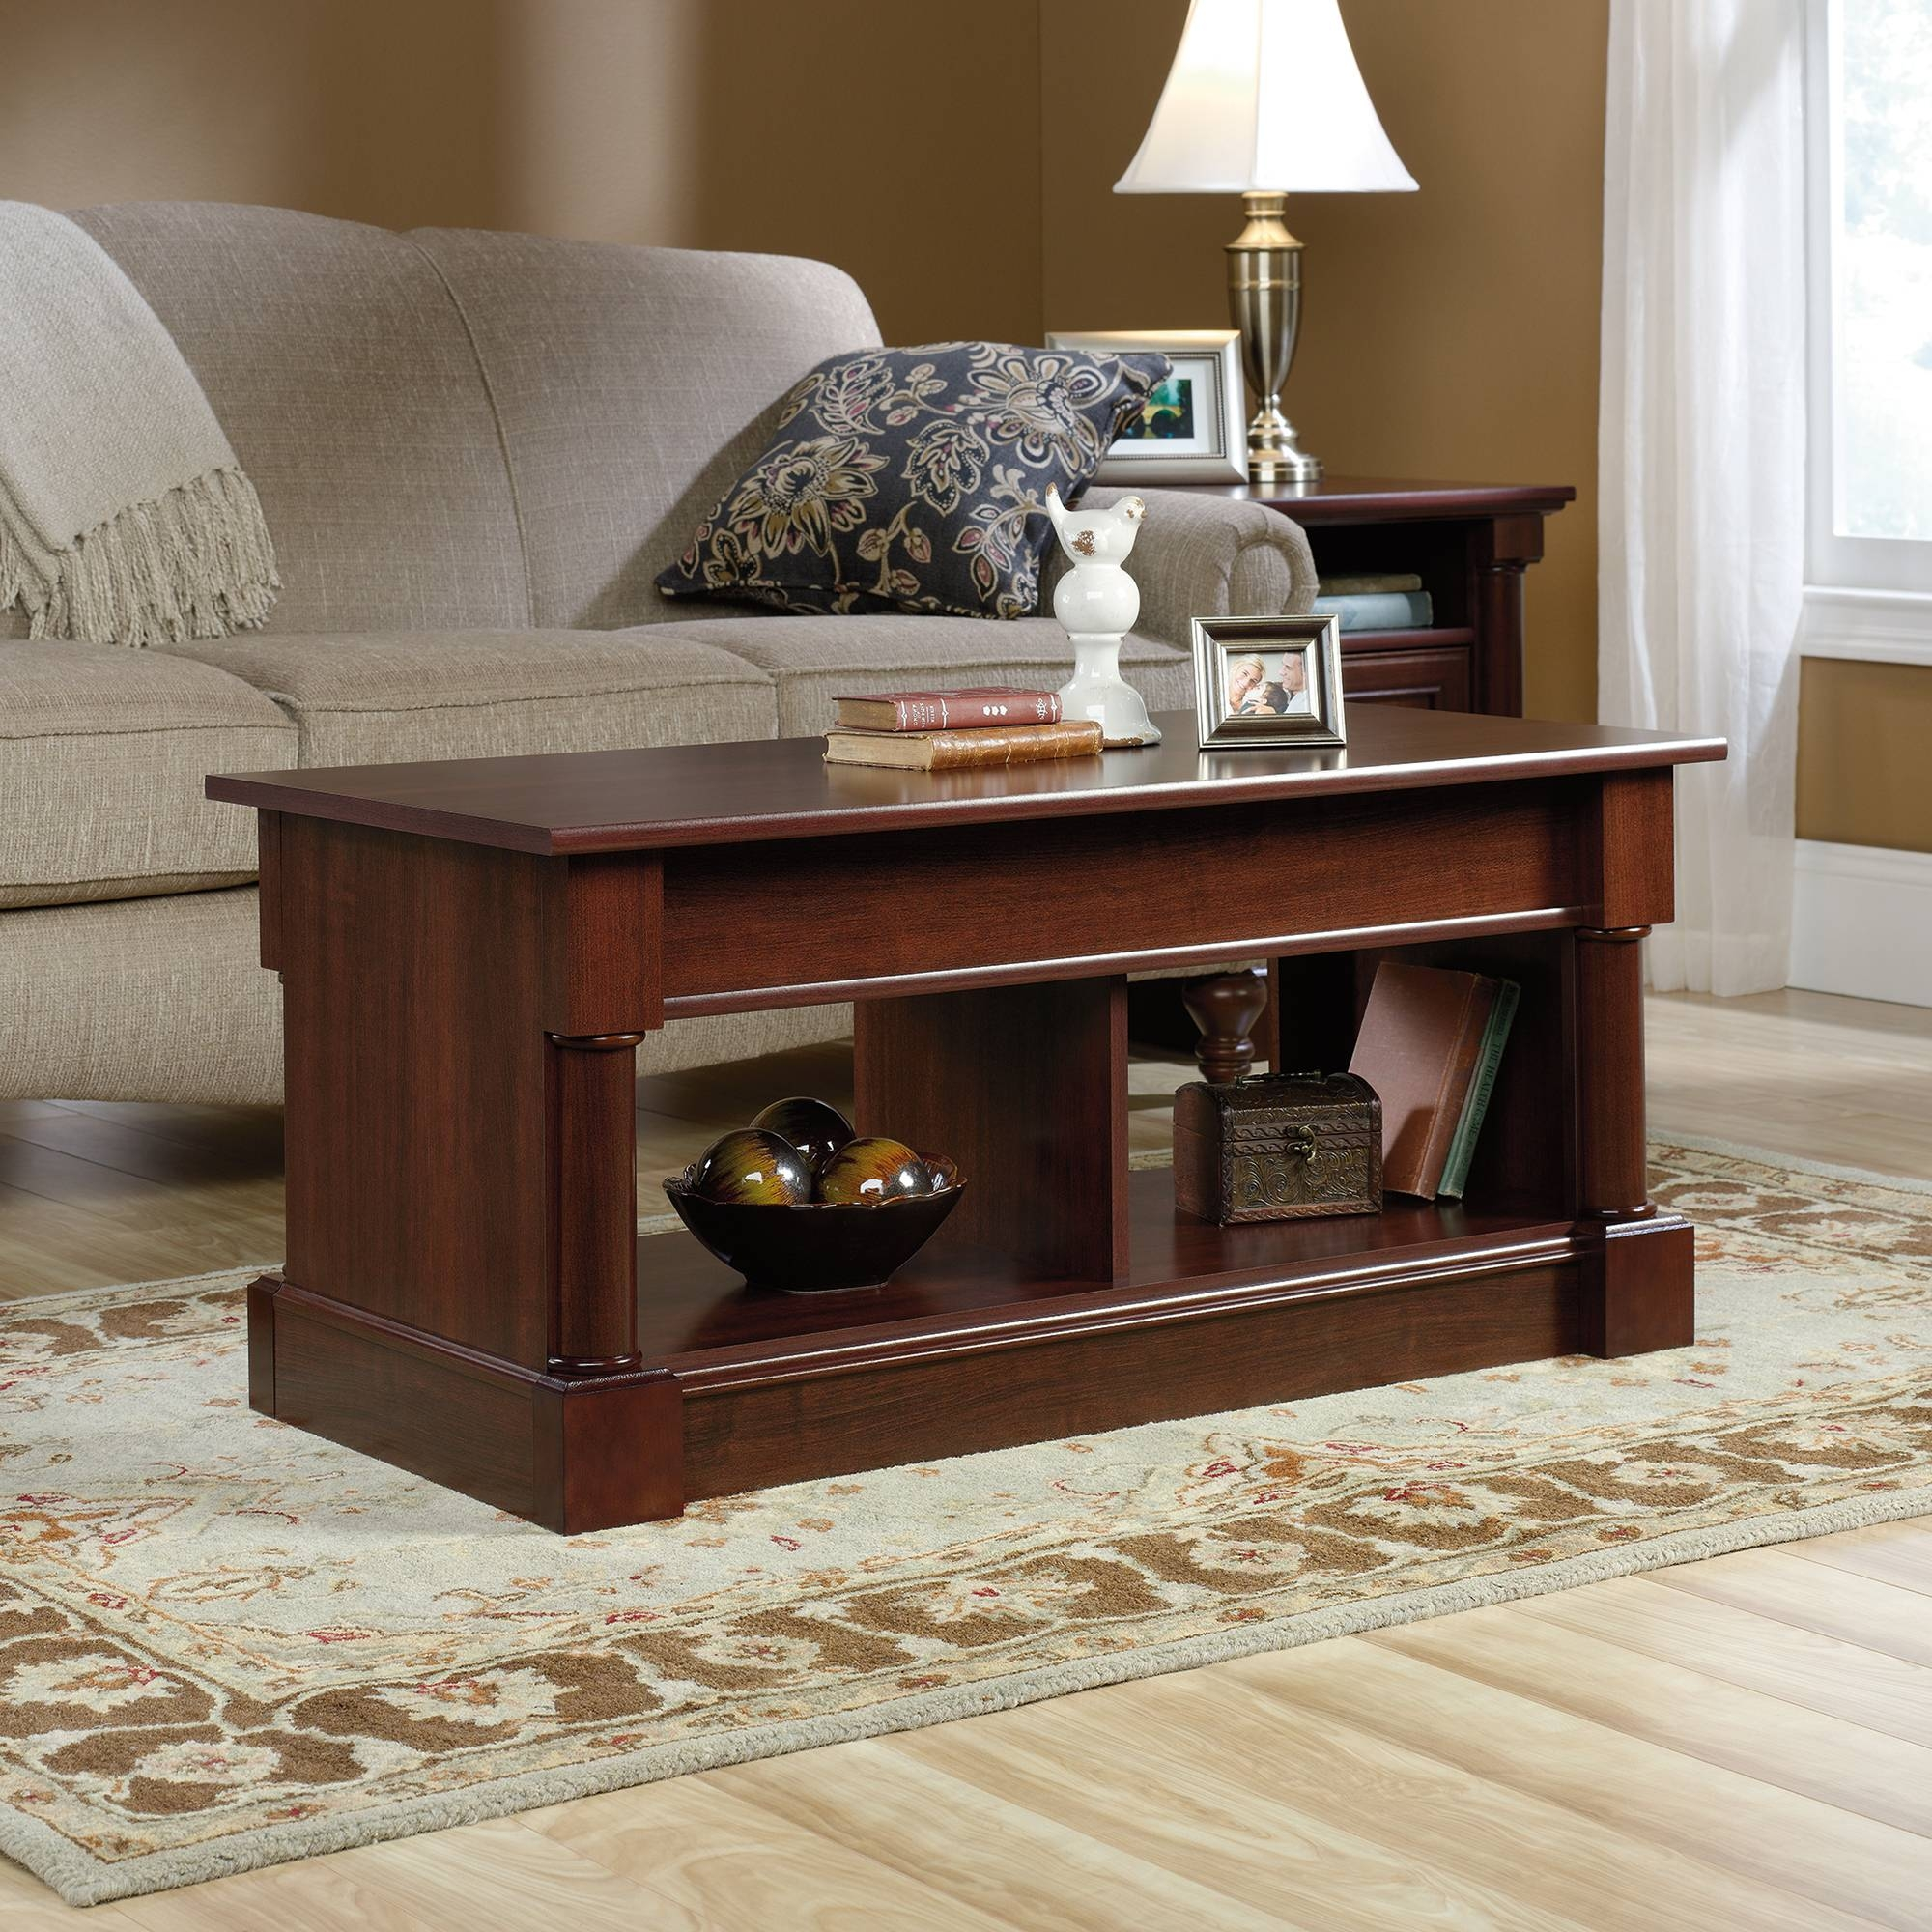 Palladia | Lift-Top Coffee Table | 420520 | Sauder with Coffee Tables With Lifting Top (Image 22 of 30)